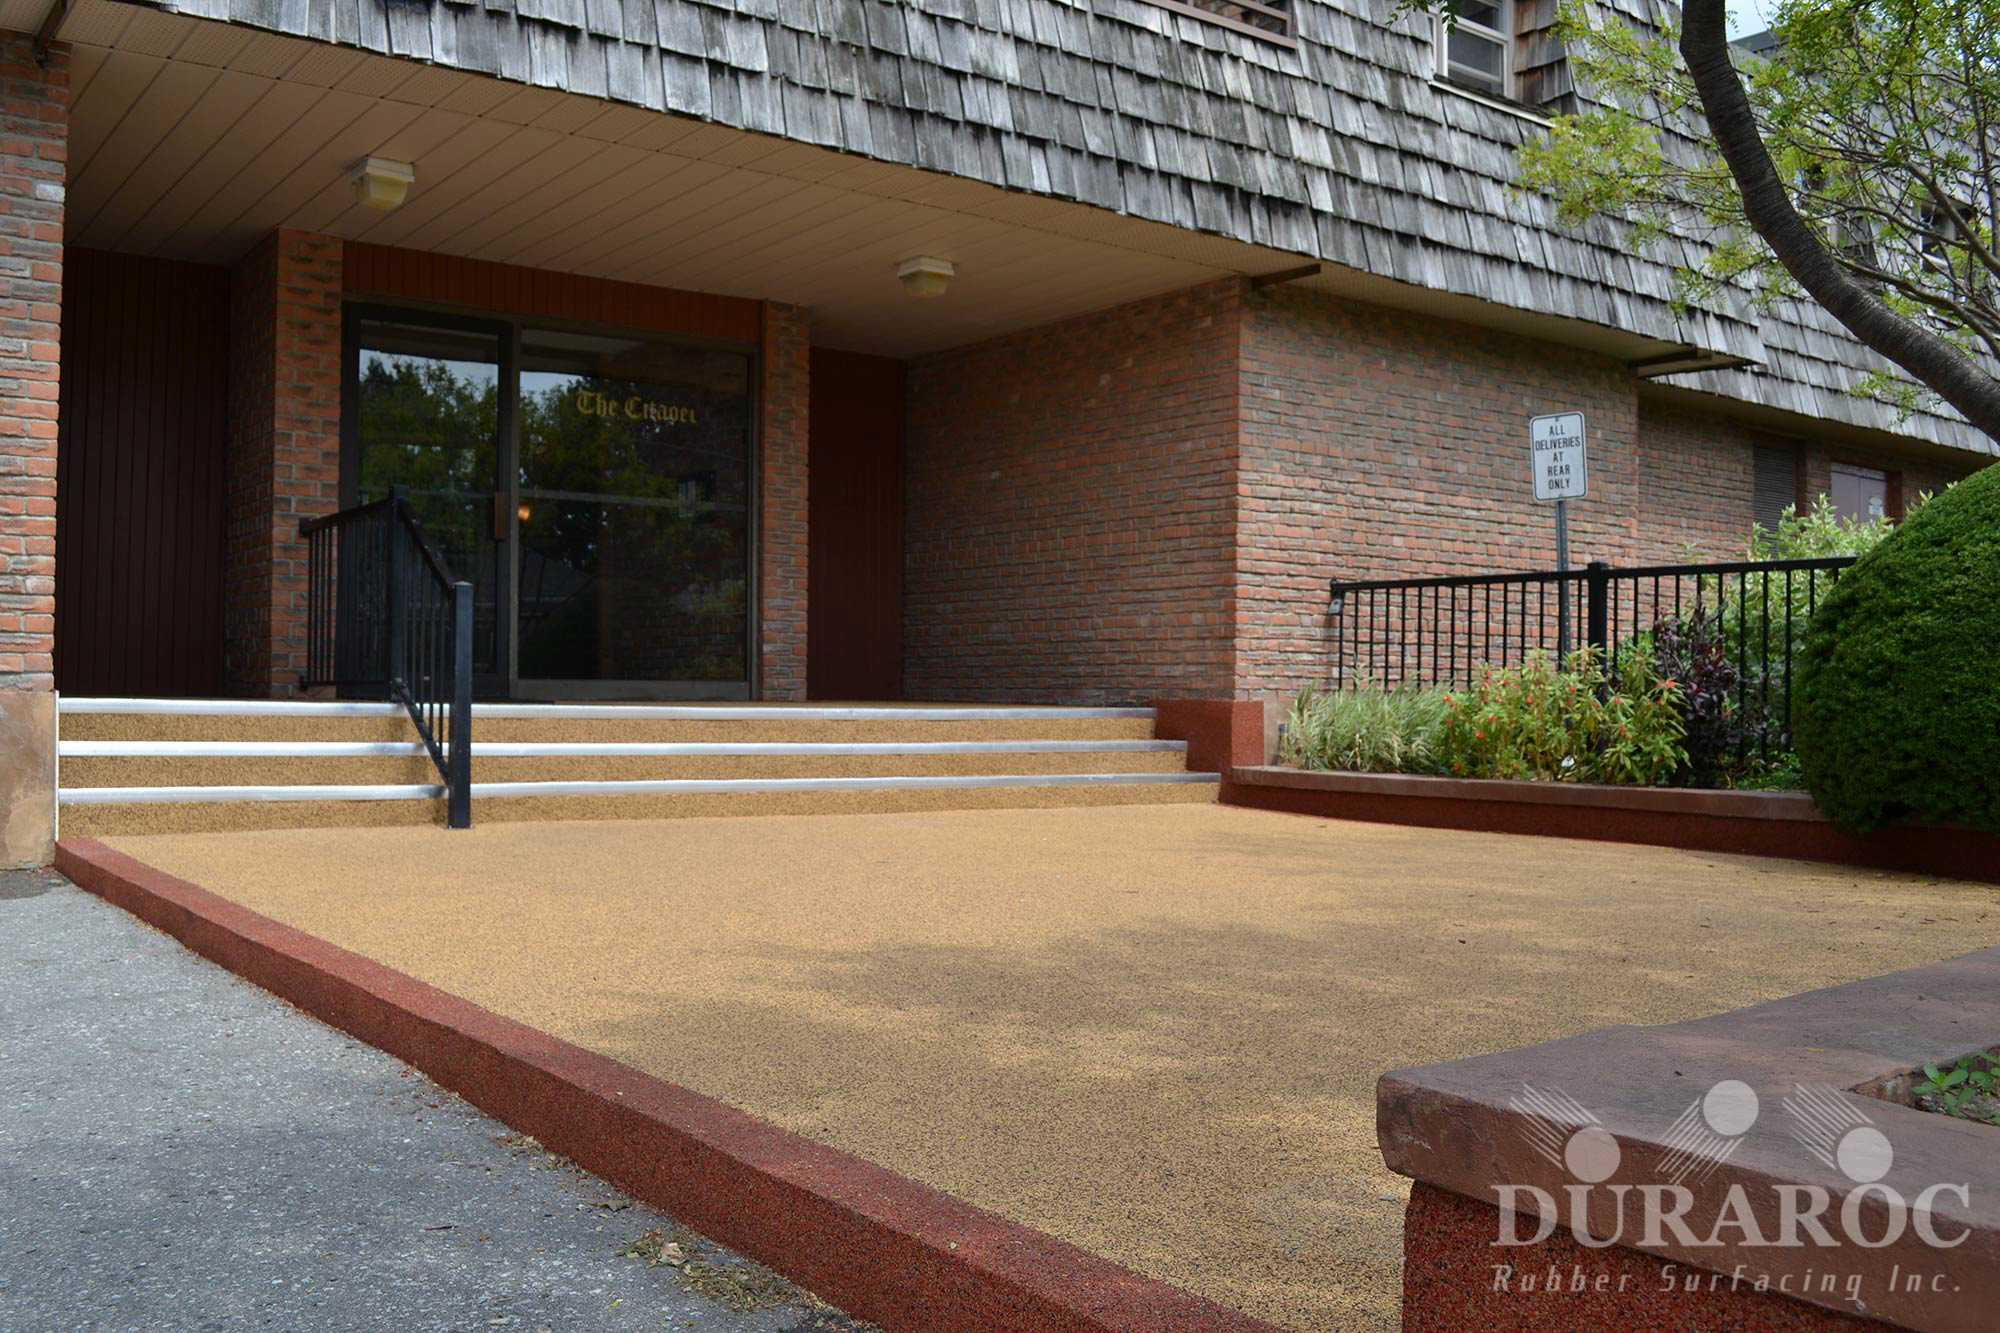 Commercial and apartment entrance with Duraroc